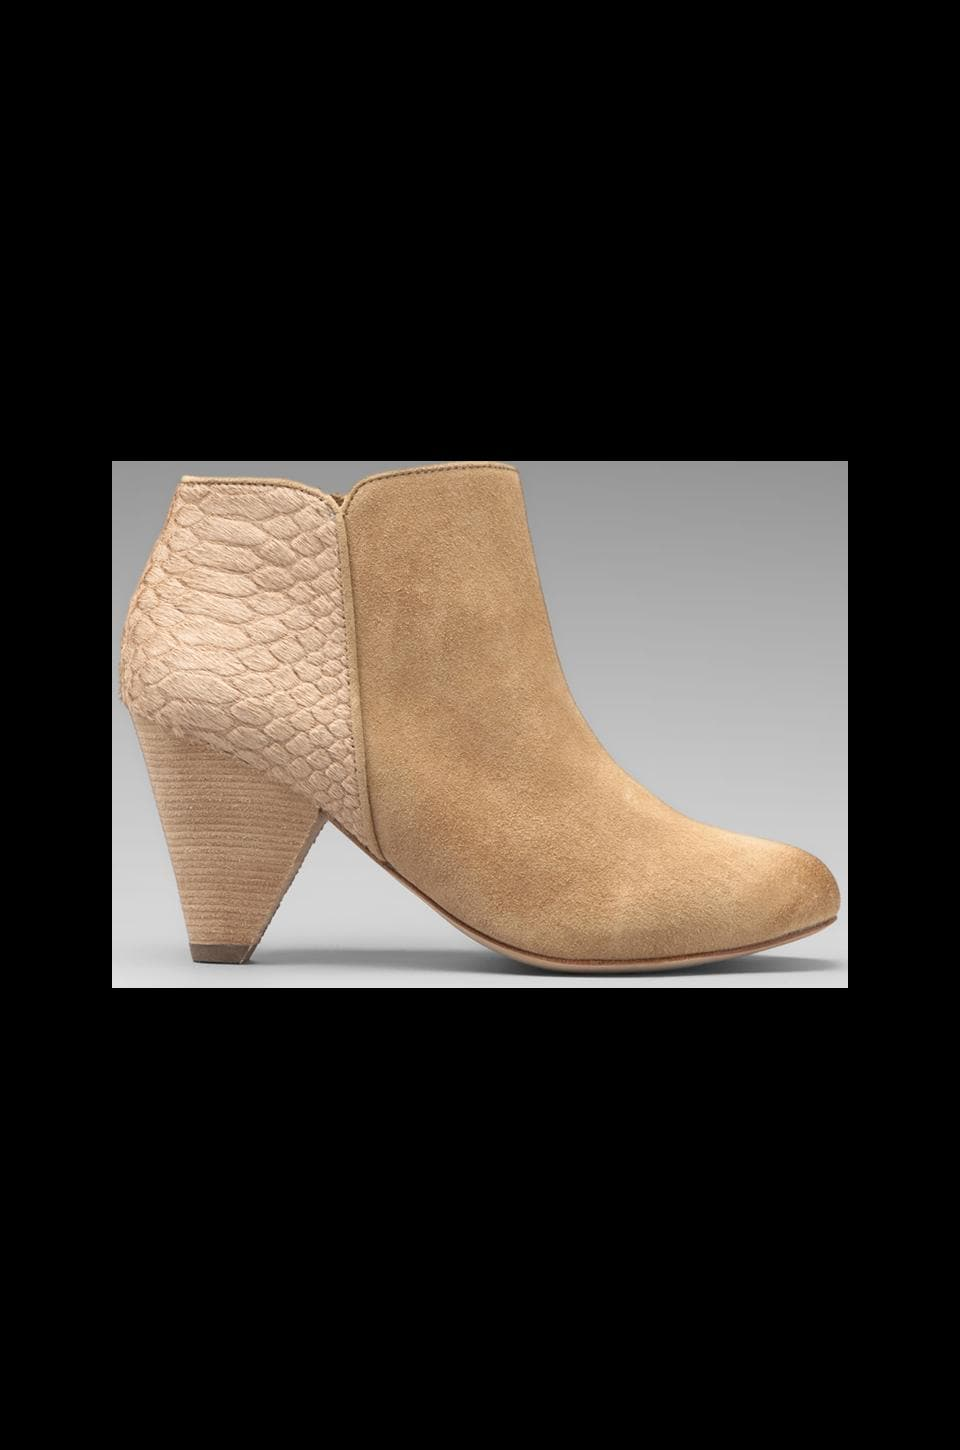 Matt Bernson Wildfox Pony Bootie with Calf Hair in Camel/Camel Pony